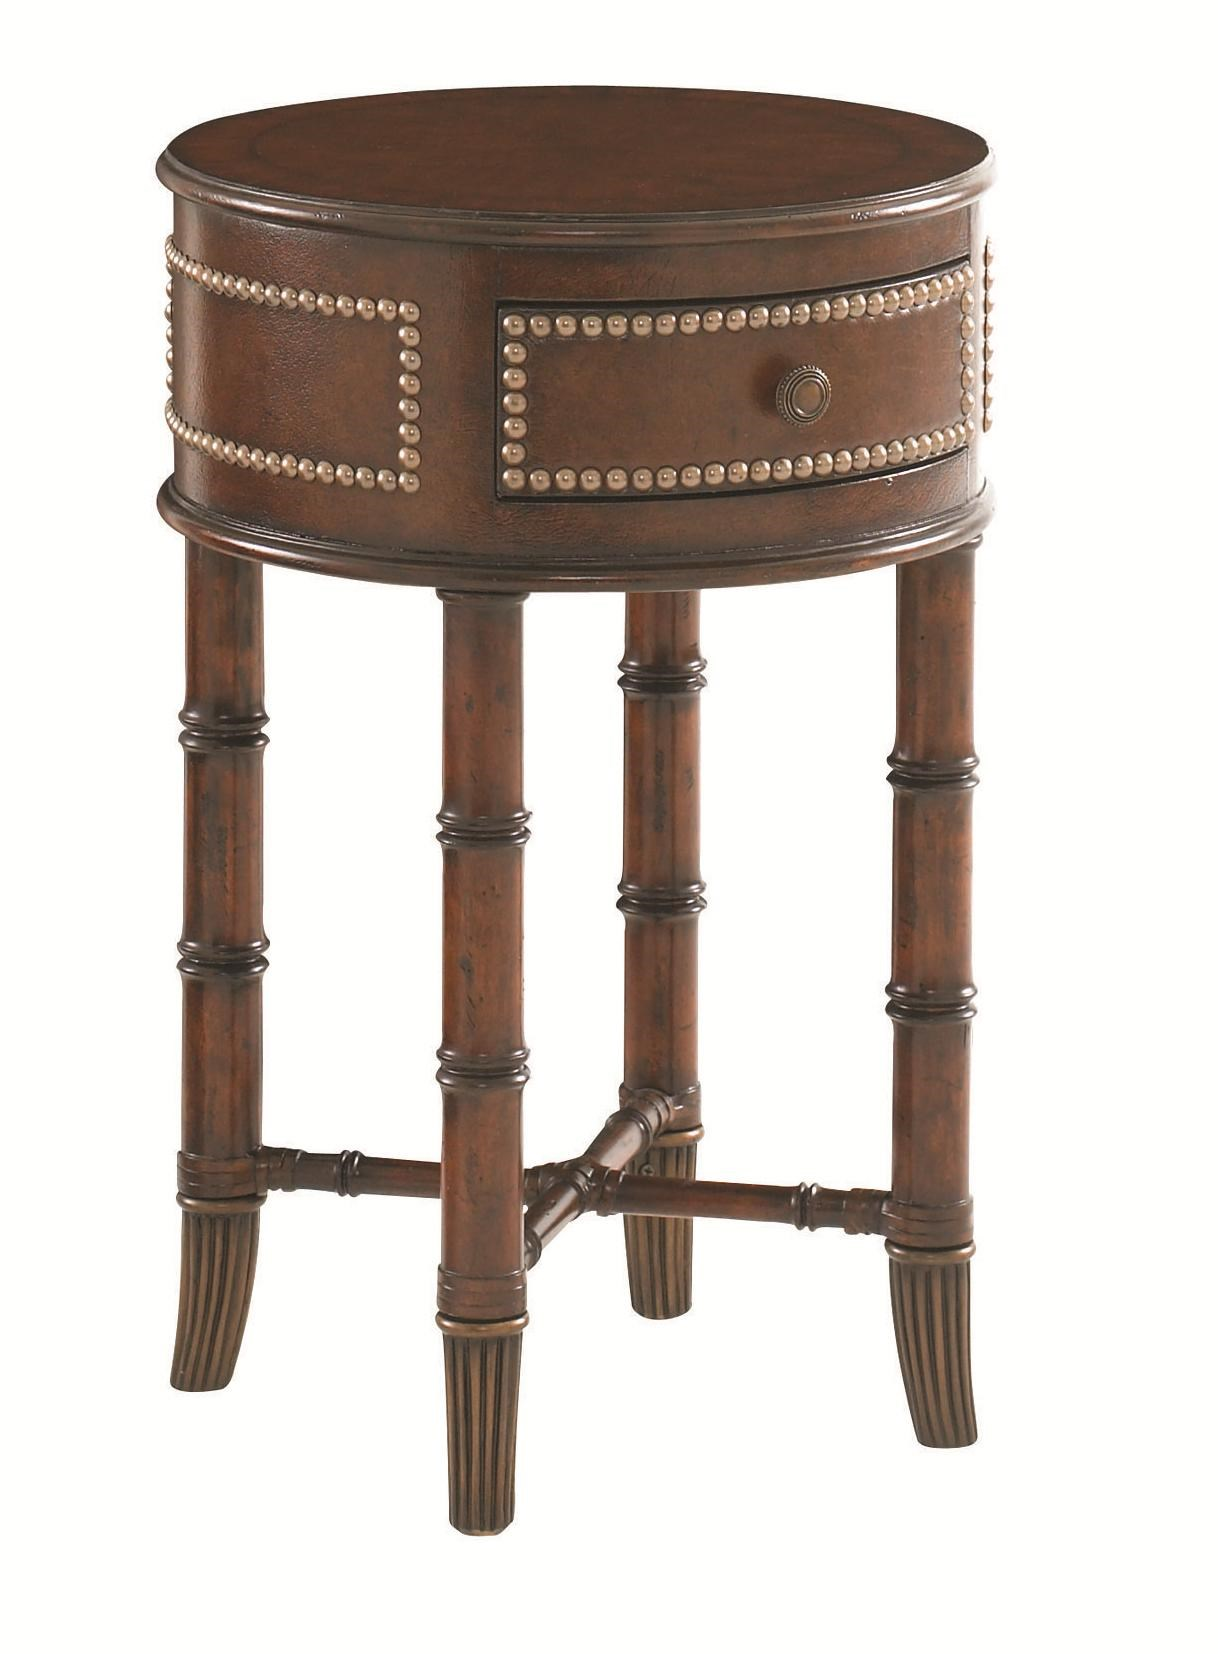 Tommy Bahama Home Landara 545-953 Bandera Leather Accent Table : Baeru0026#39;s Furniture : End Table ...